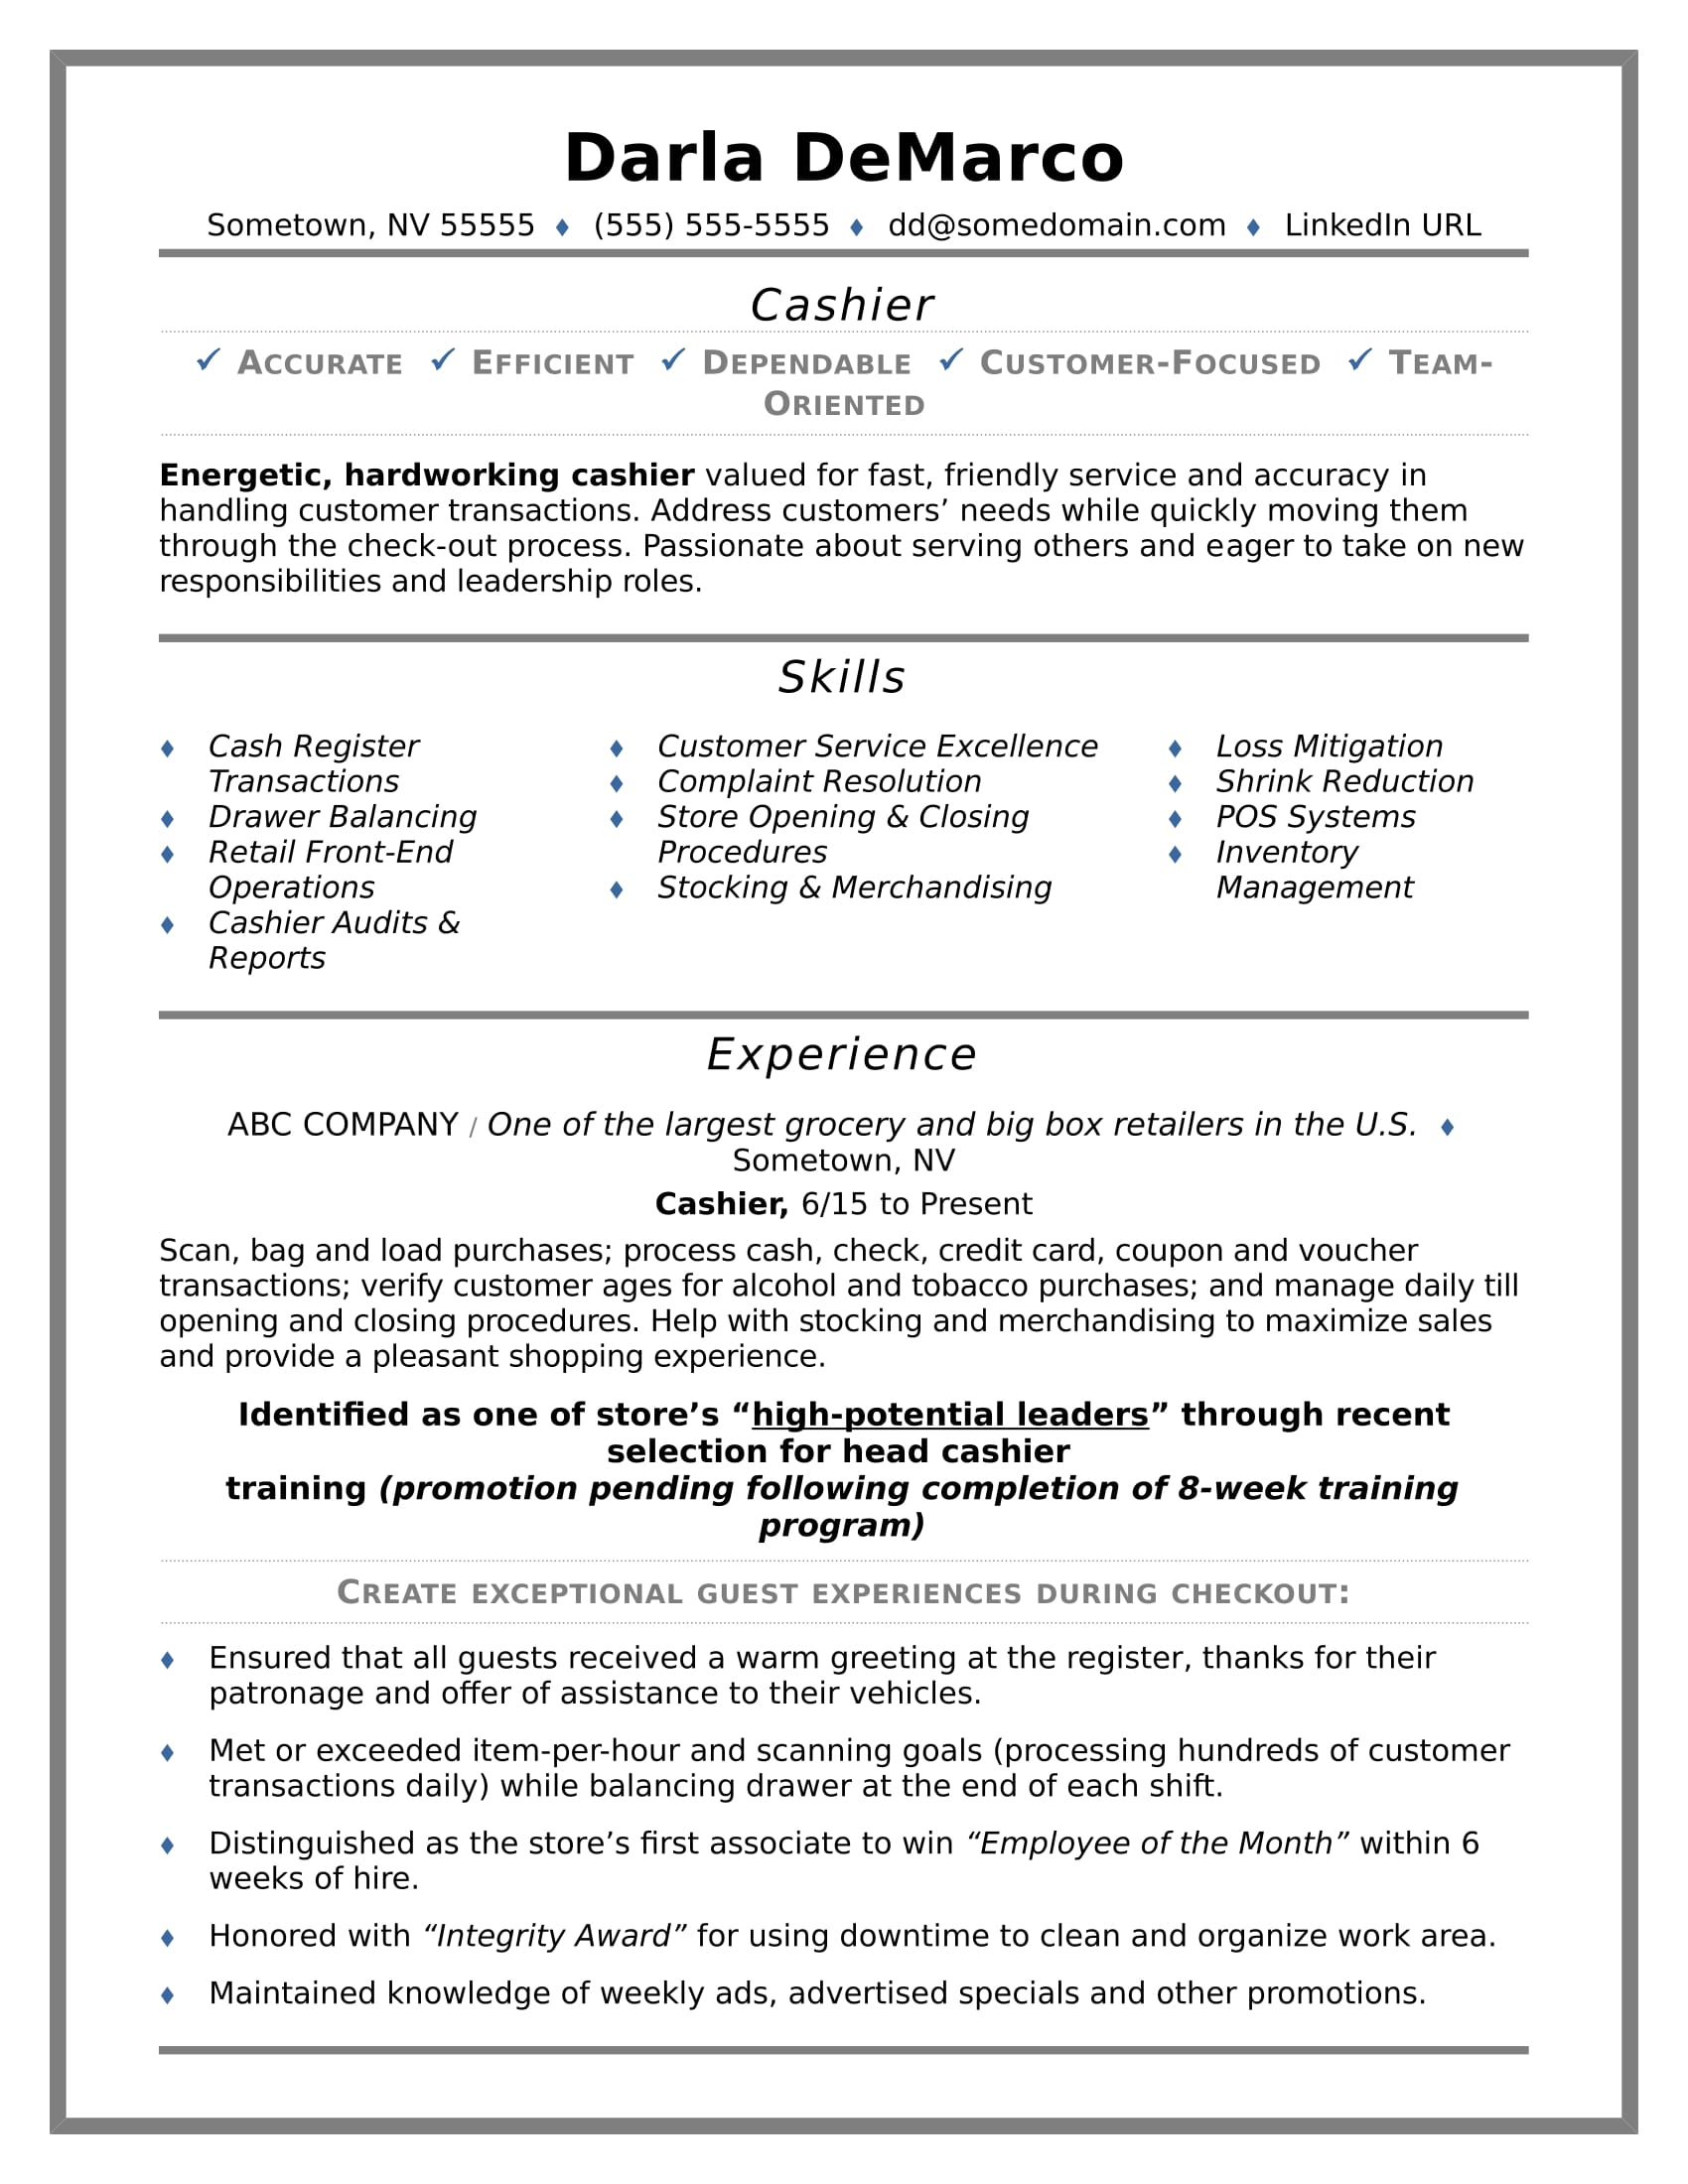 cashier resume sample - Sample Employment Resume